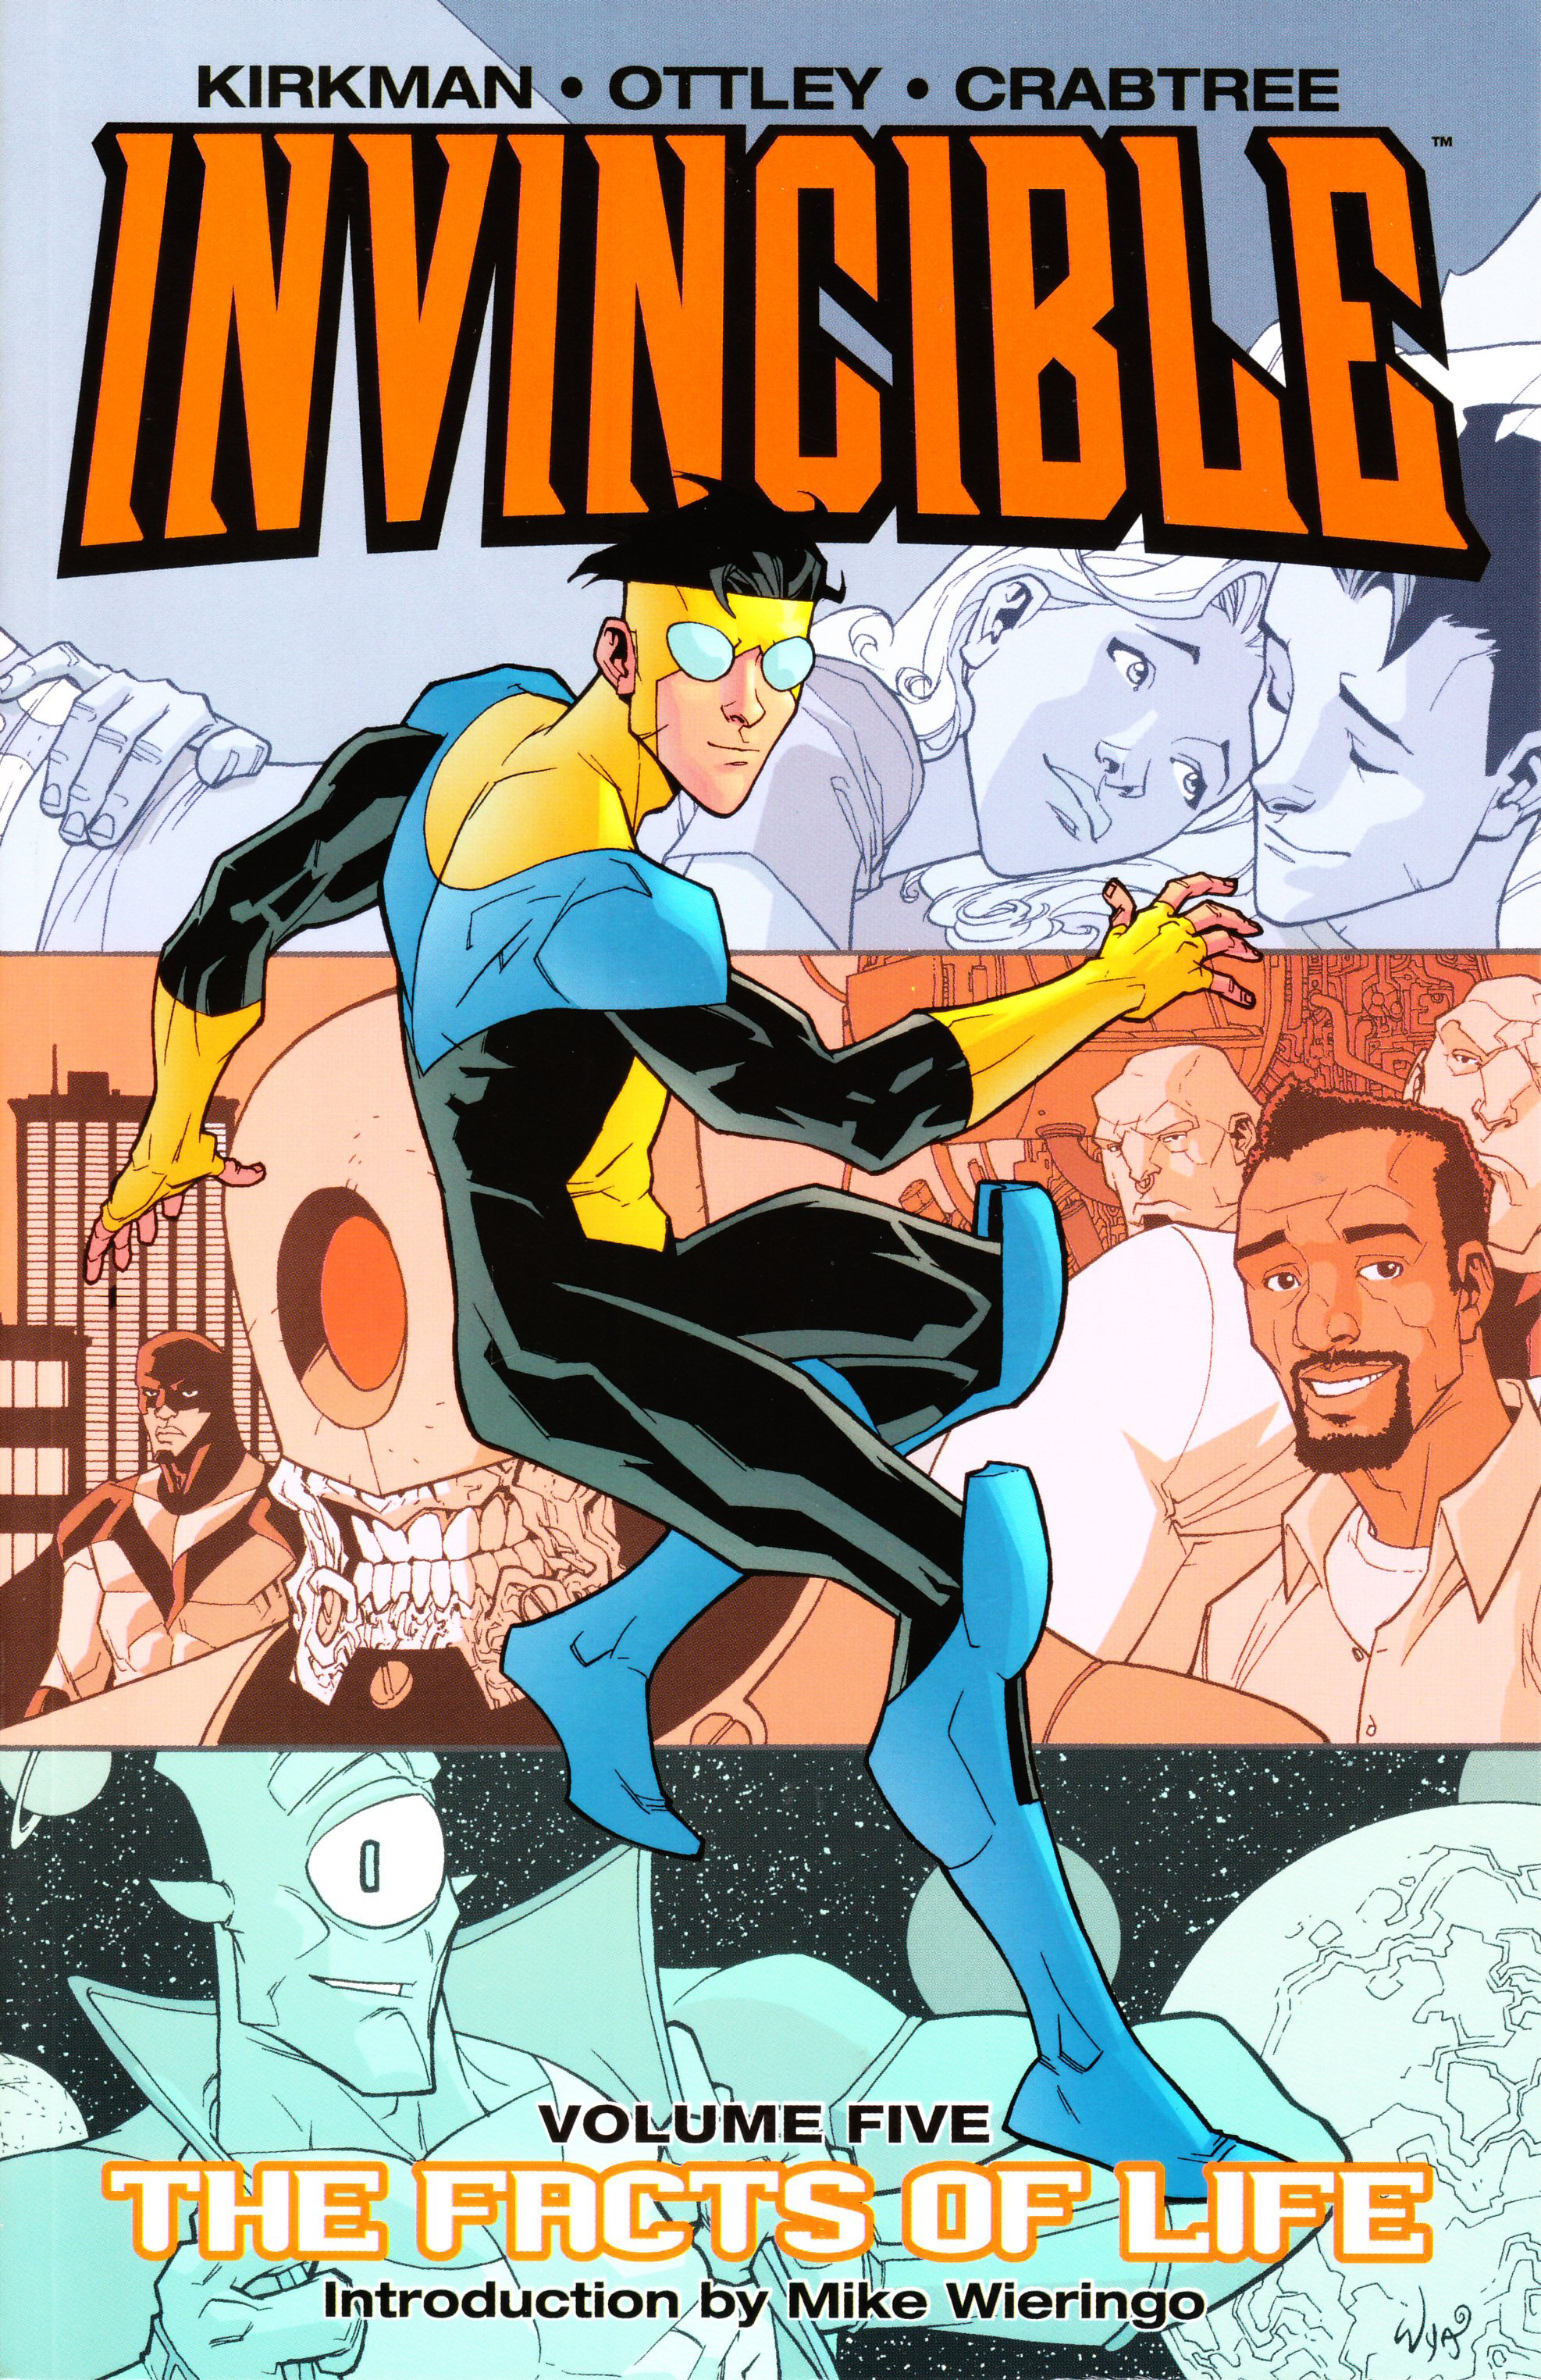 INVINCIBLE TP VOL 05 FACTS OF LIFE (JUL051626)